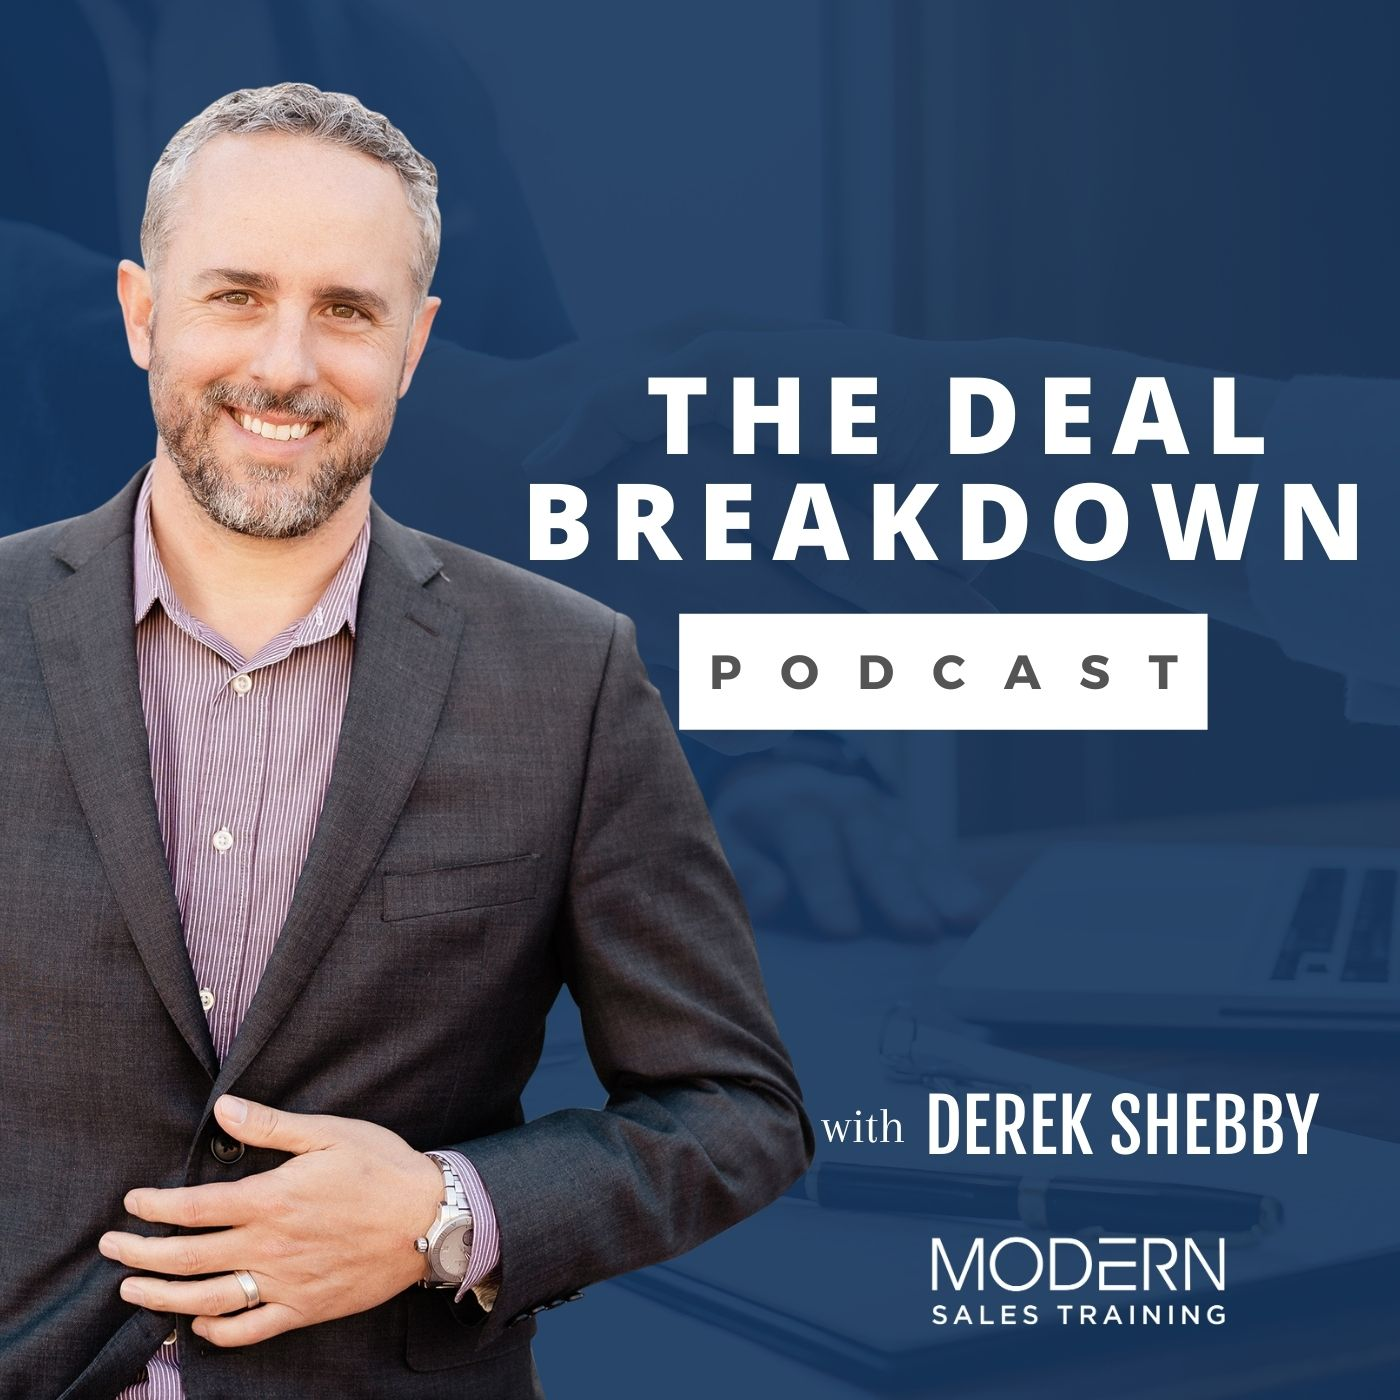 The-Deal-Breakdown-Podcast-Derek-Shebby-Modern-Sales-Training